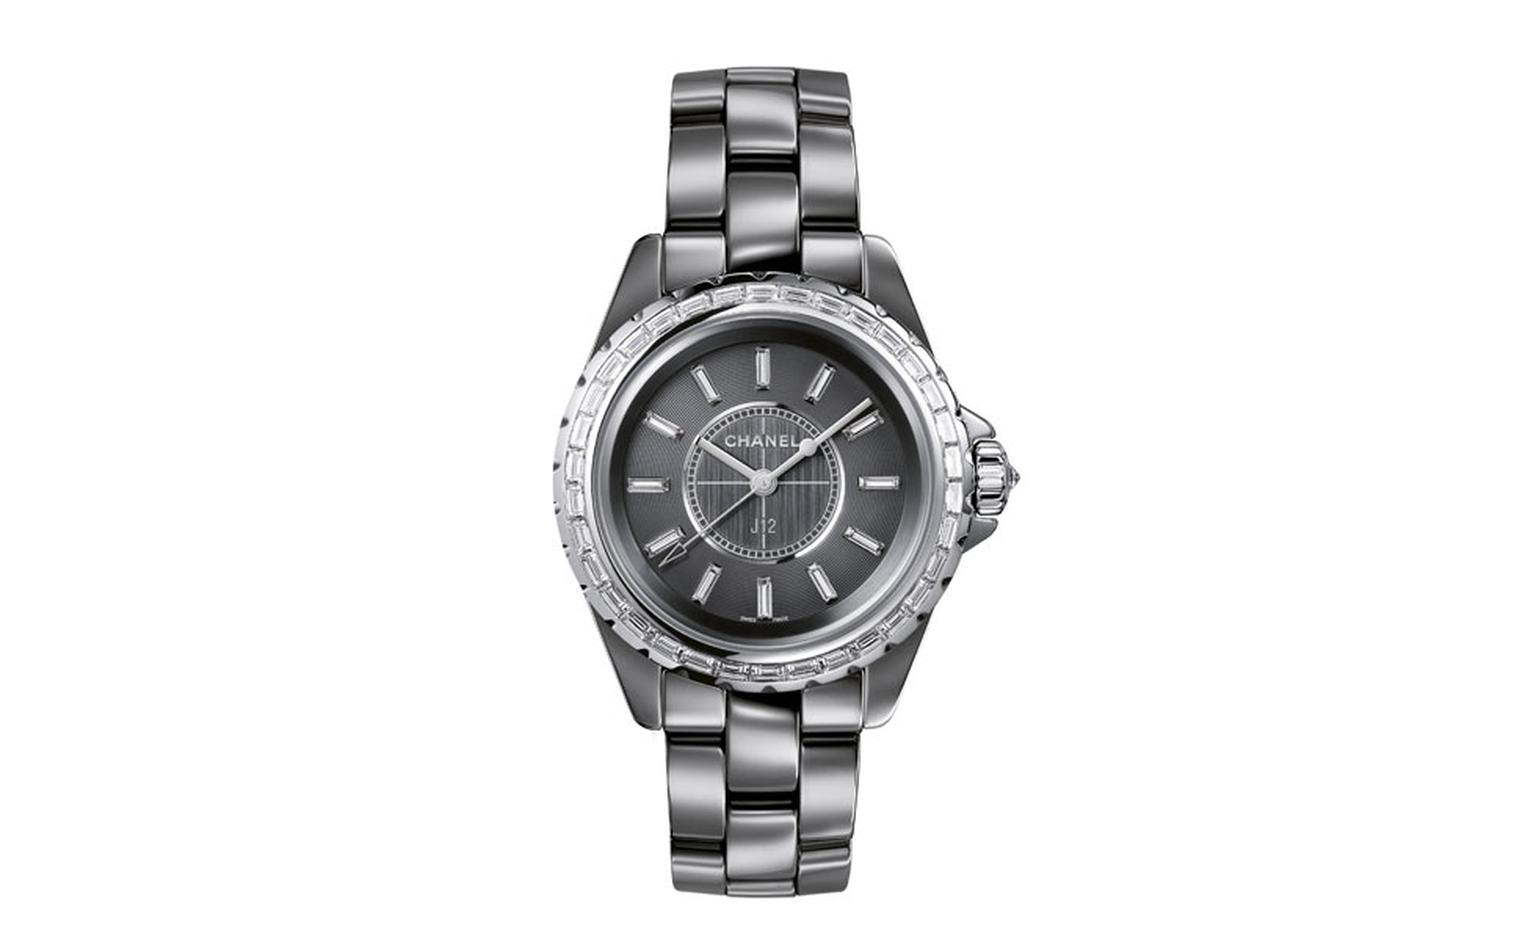 Chanel J12 Chromatic watch in titanium ceramic. 18-karat white gold bezel, crown and hands. 34 baguette-cut diamonds. Dial set with 12 baguette-cut diamond indicators. Brilliant-cut diamond crown. High-precision quartz movement. Functions: hours...